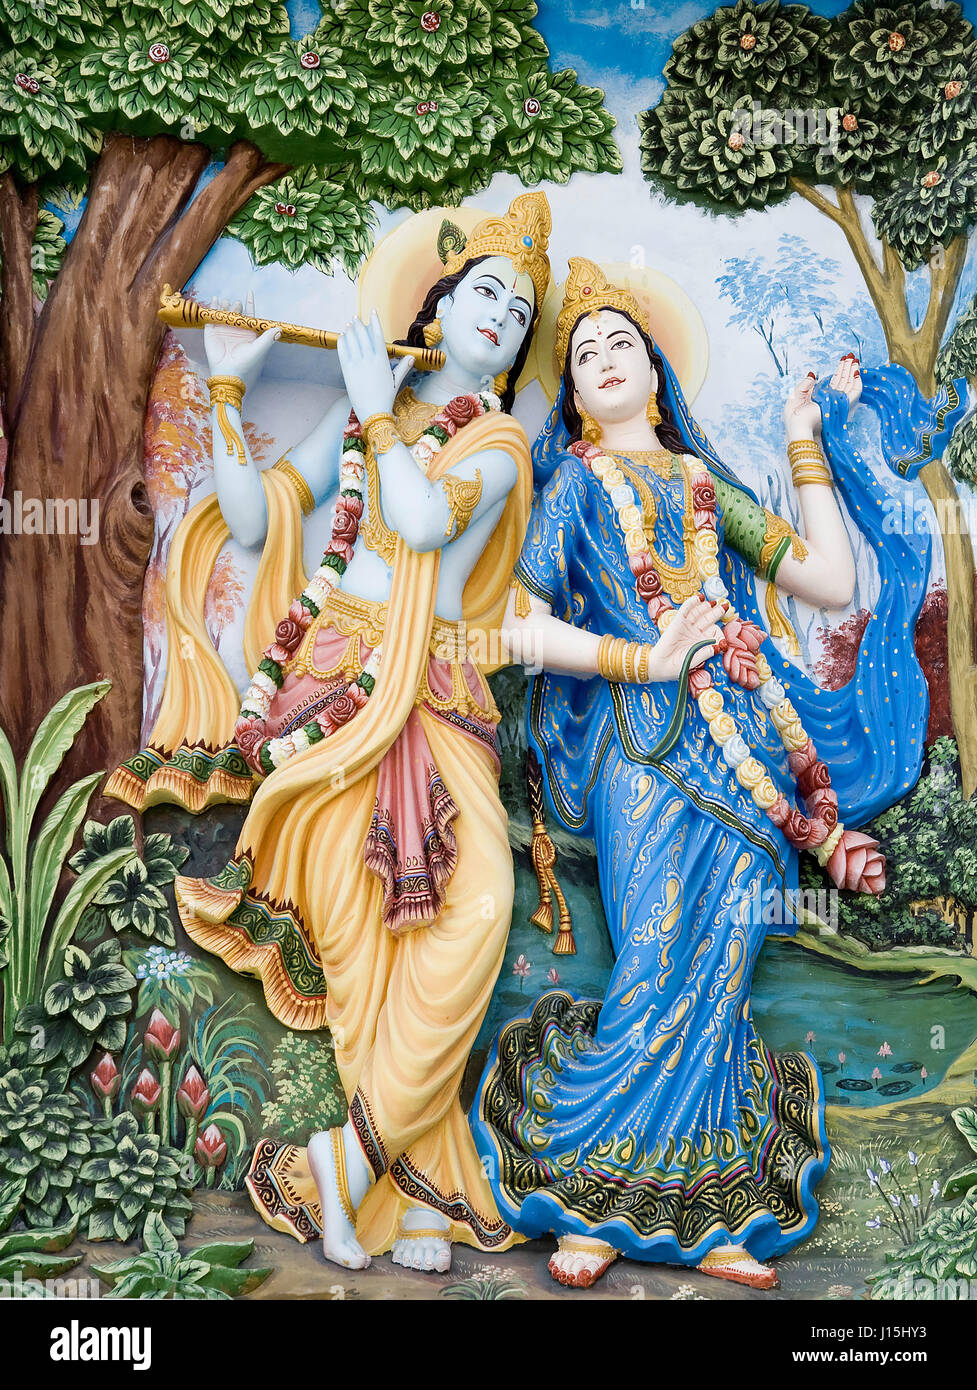 Exceptional Radha Krishna Painting On Wall, Mathura, Uttar Pradesh, India, Asia Part 8